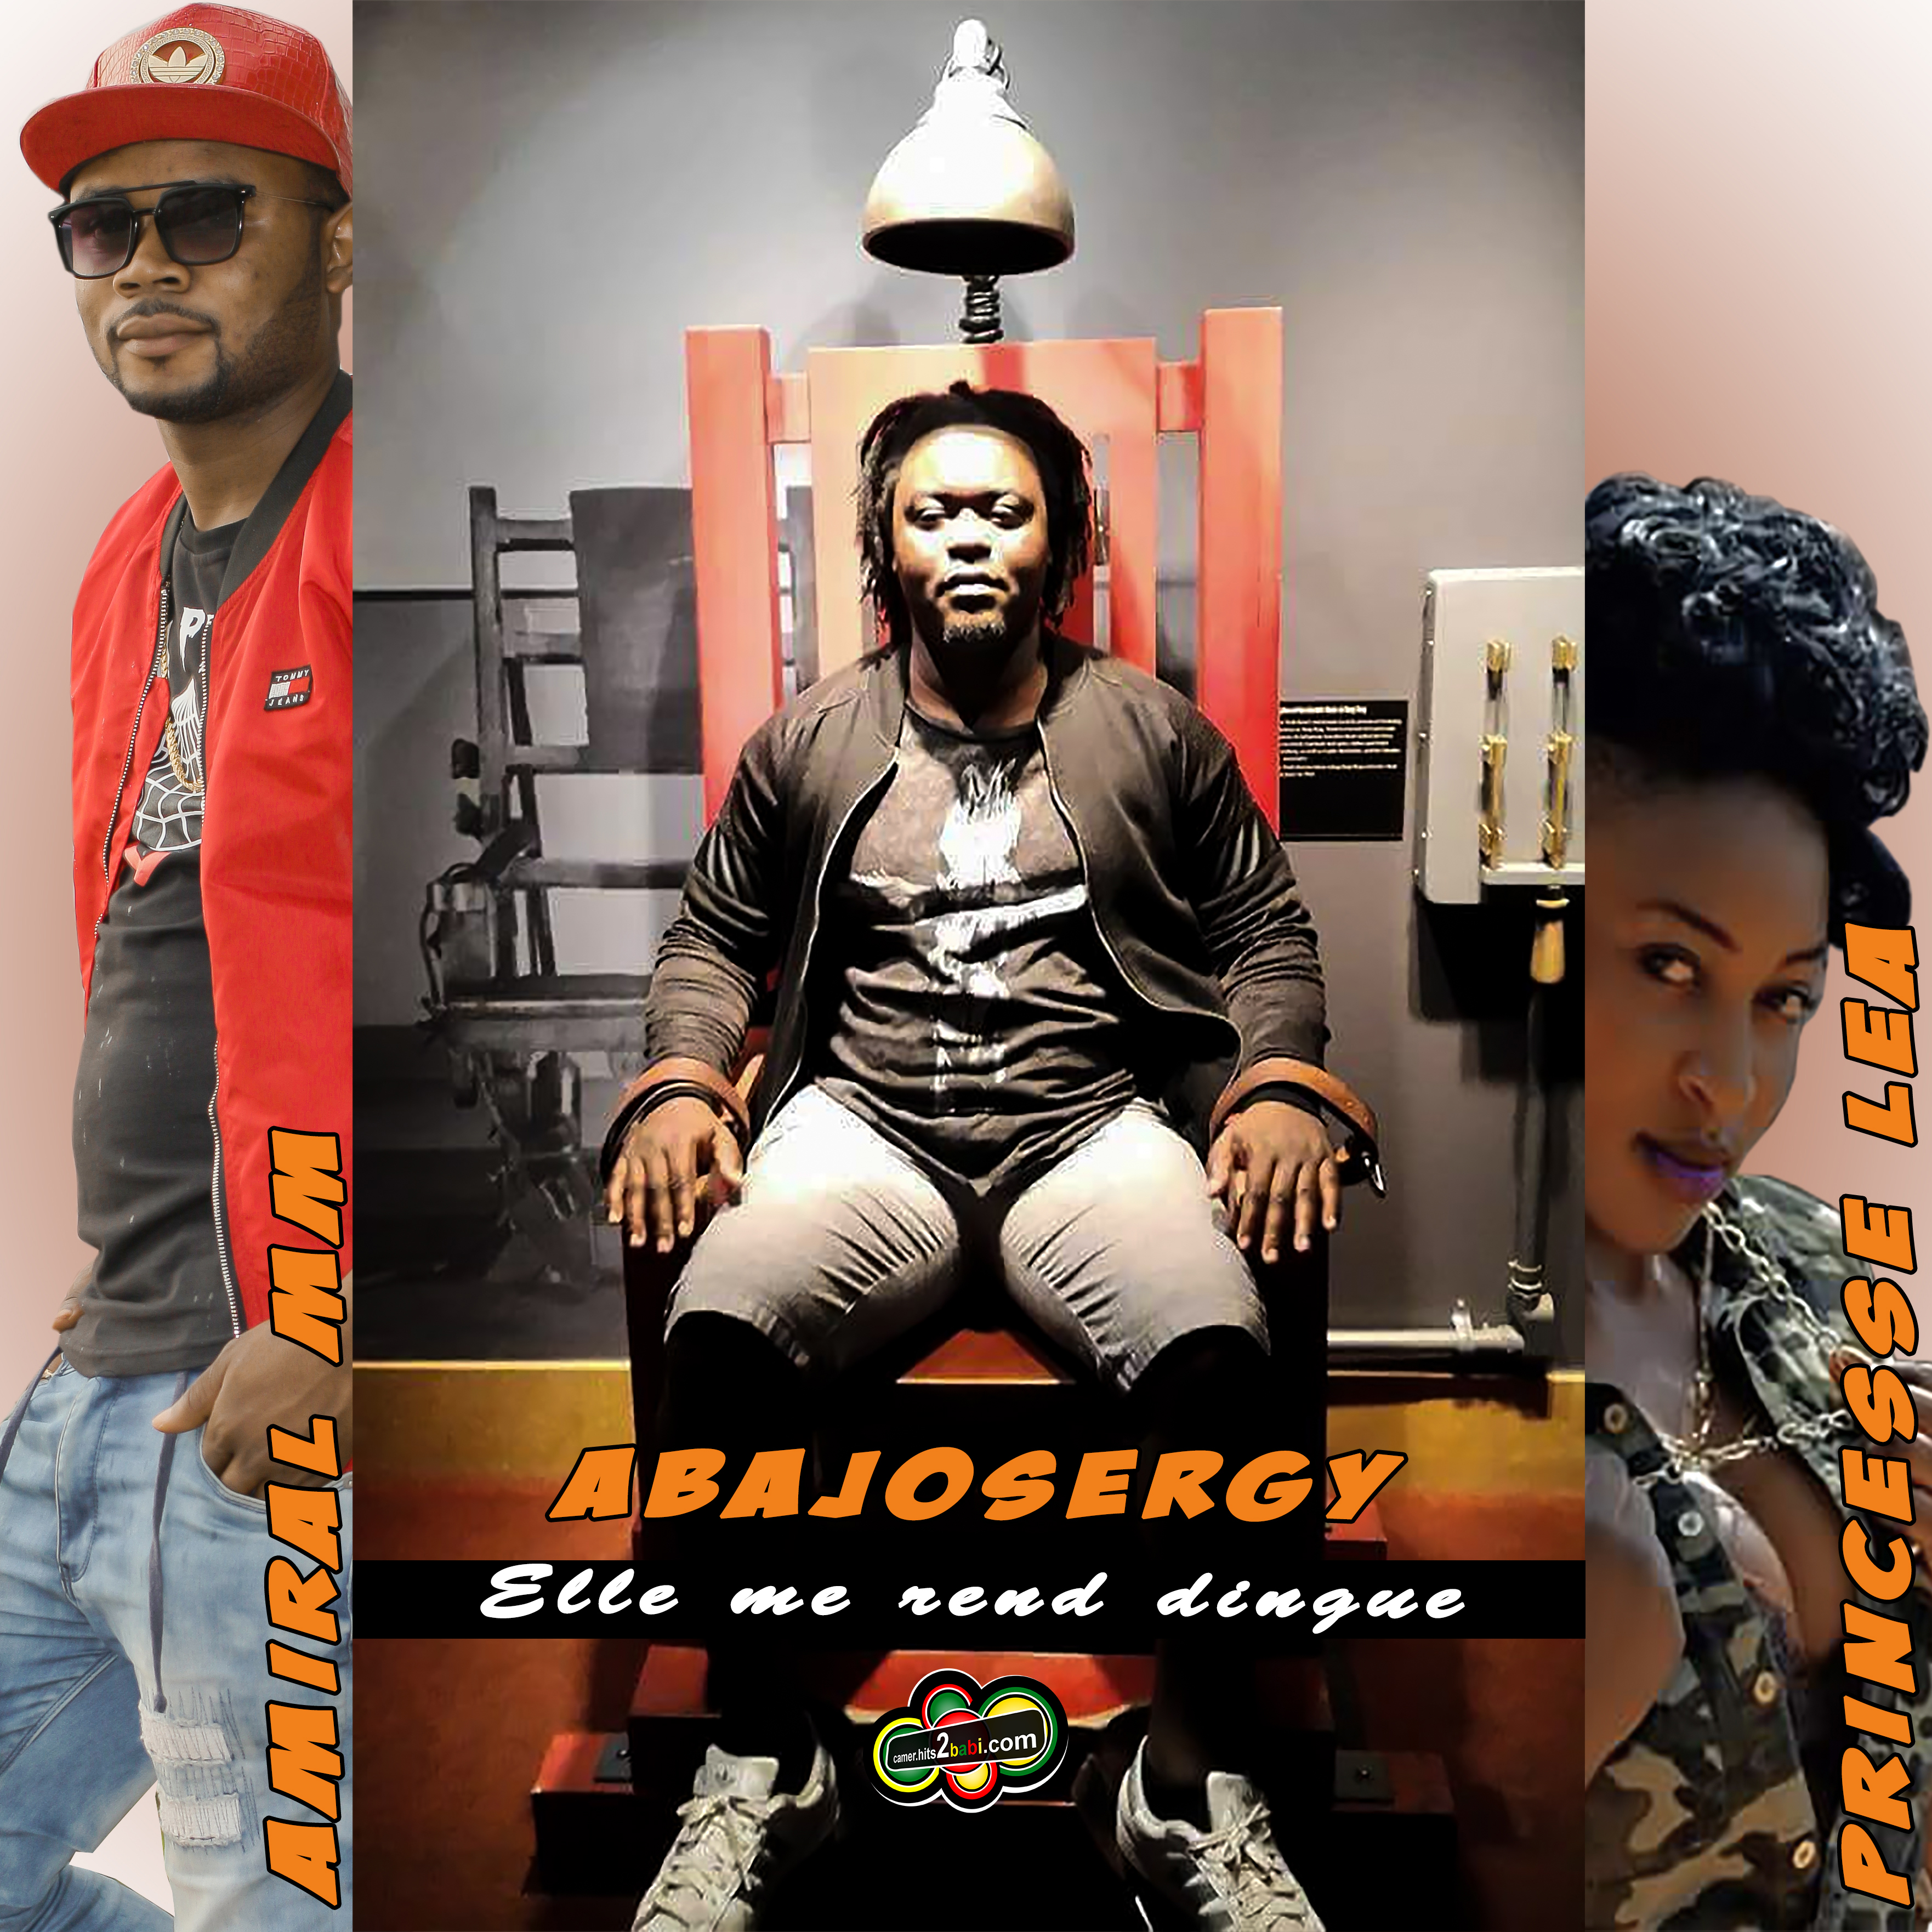 ABAJOSERGY FT AMIRAL MM & PRINCESS LEA - ELLE ME REND DINGUE